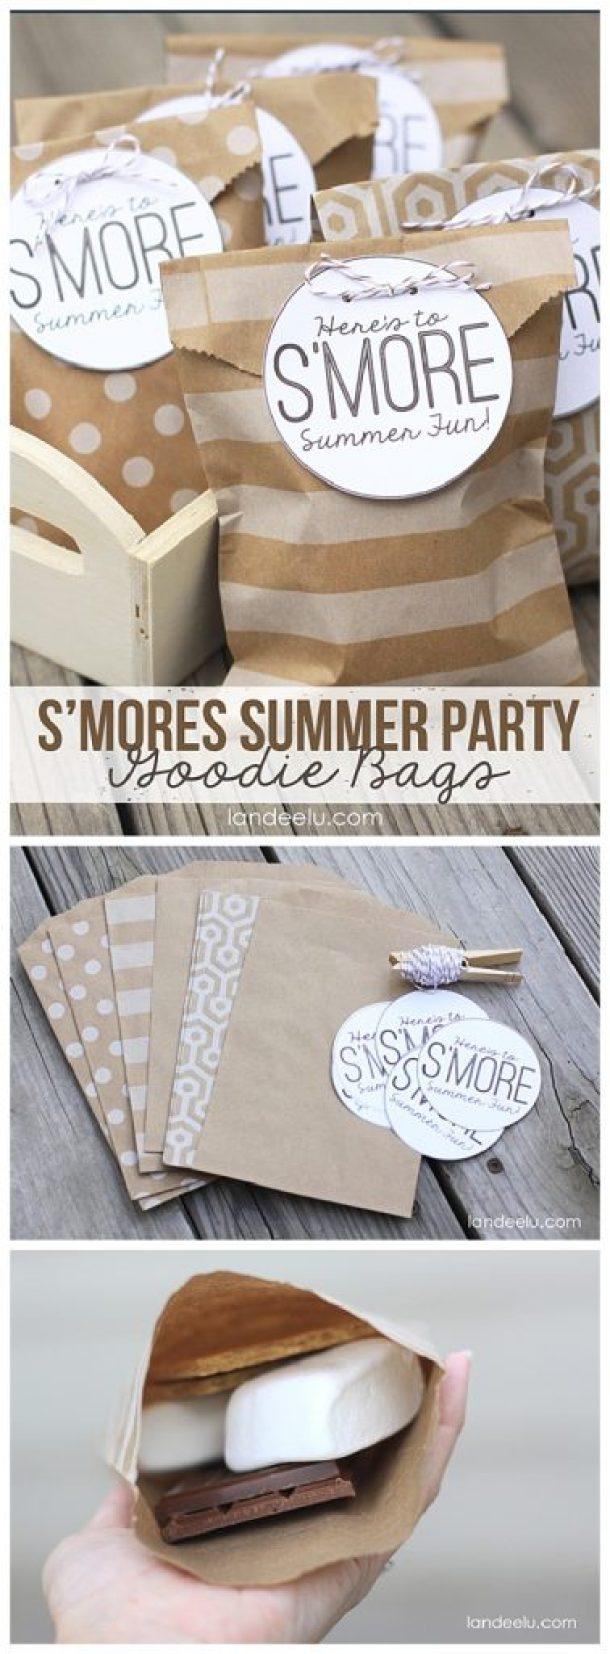 S'Mores Dessert Treats Recipes - SMORES Summer Party Goodie Bags Tutorial and FREE Printables via Landeelu